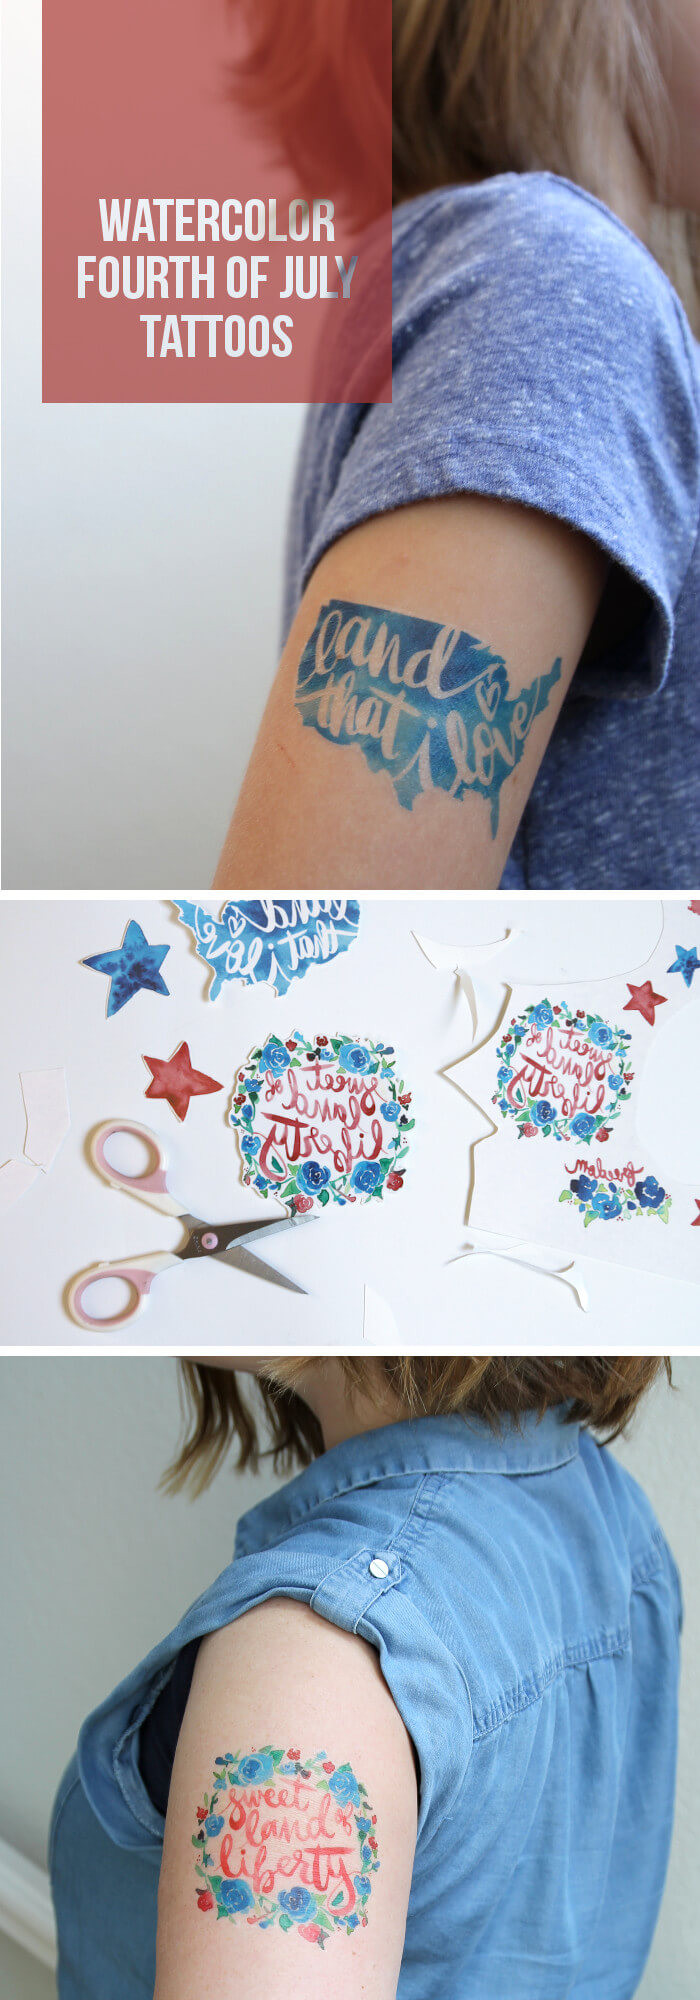 Best ideas about Temporary Tattoos DIY . Save or Pin Make Watercolor Fourth of July Temporary Tattoos Persia Lou Now.